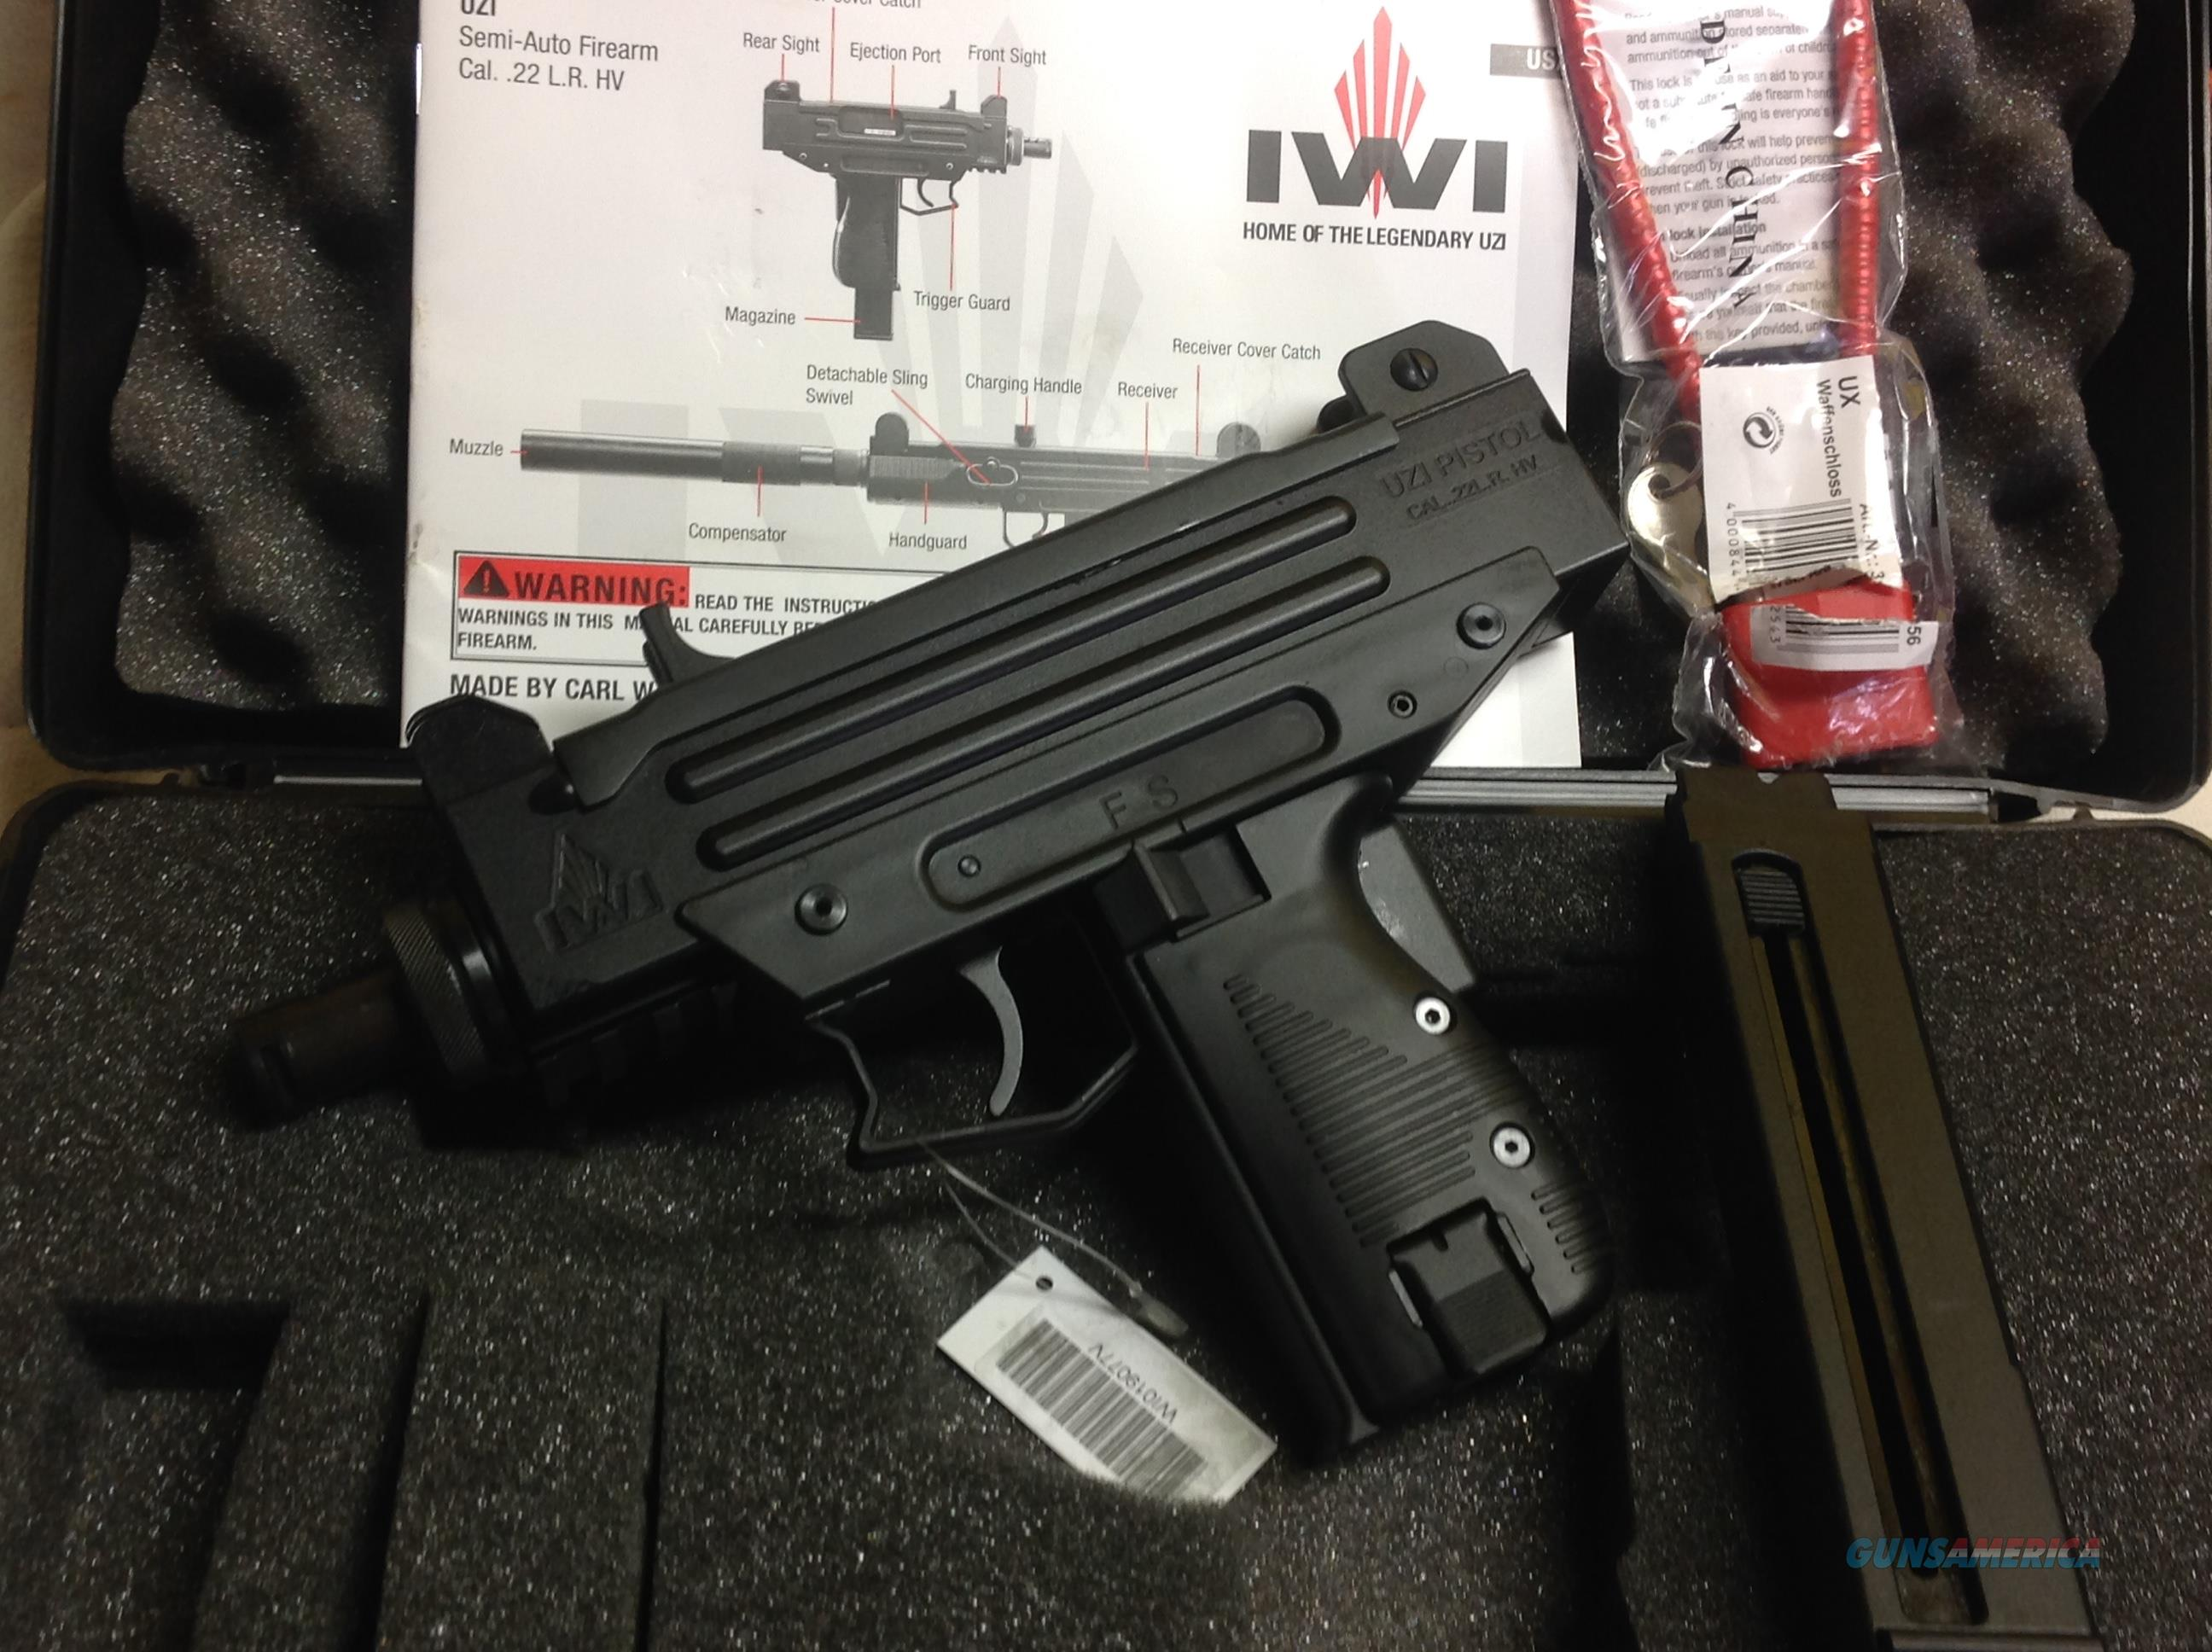 UZI Pistol in  22 LR by IWI, New in Box, Only Genuine Tactical Rimfire